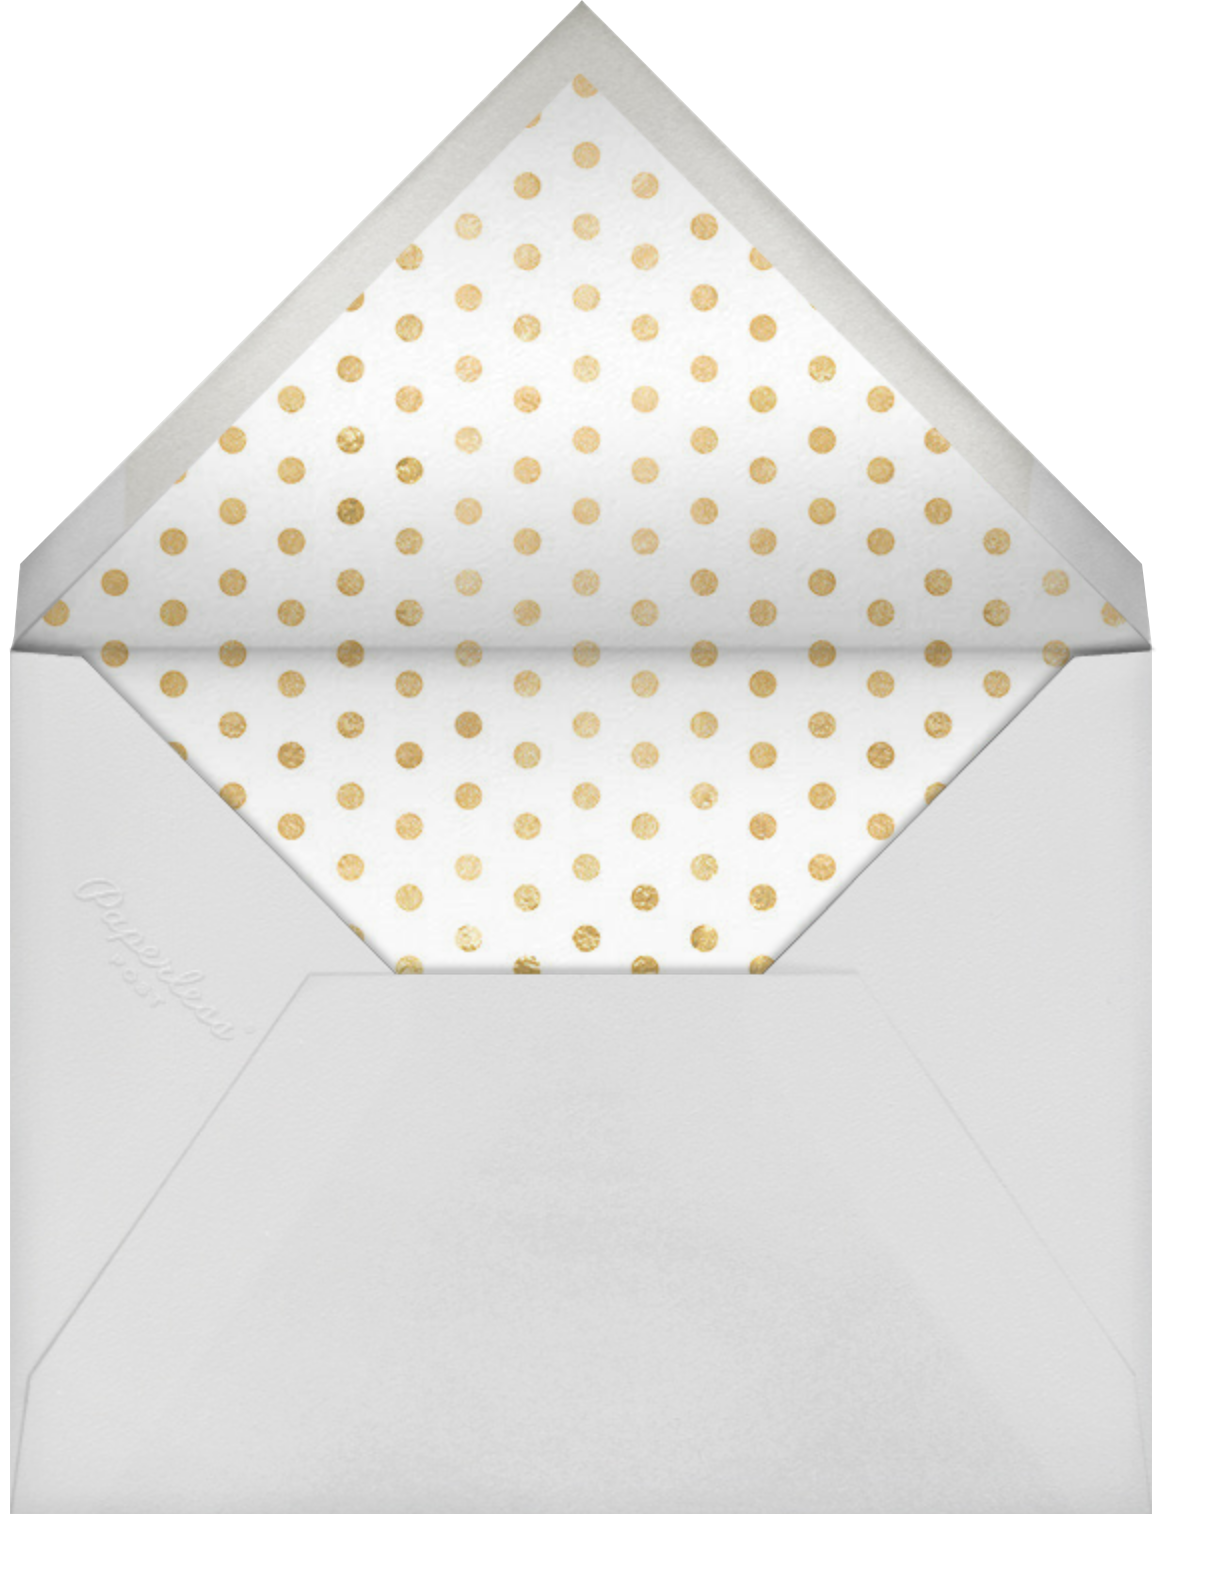 Princess Cake - Rifle Paper Co. - Bridal shower - envelope back